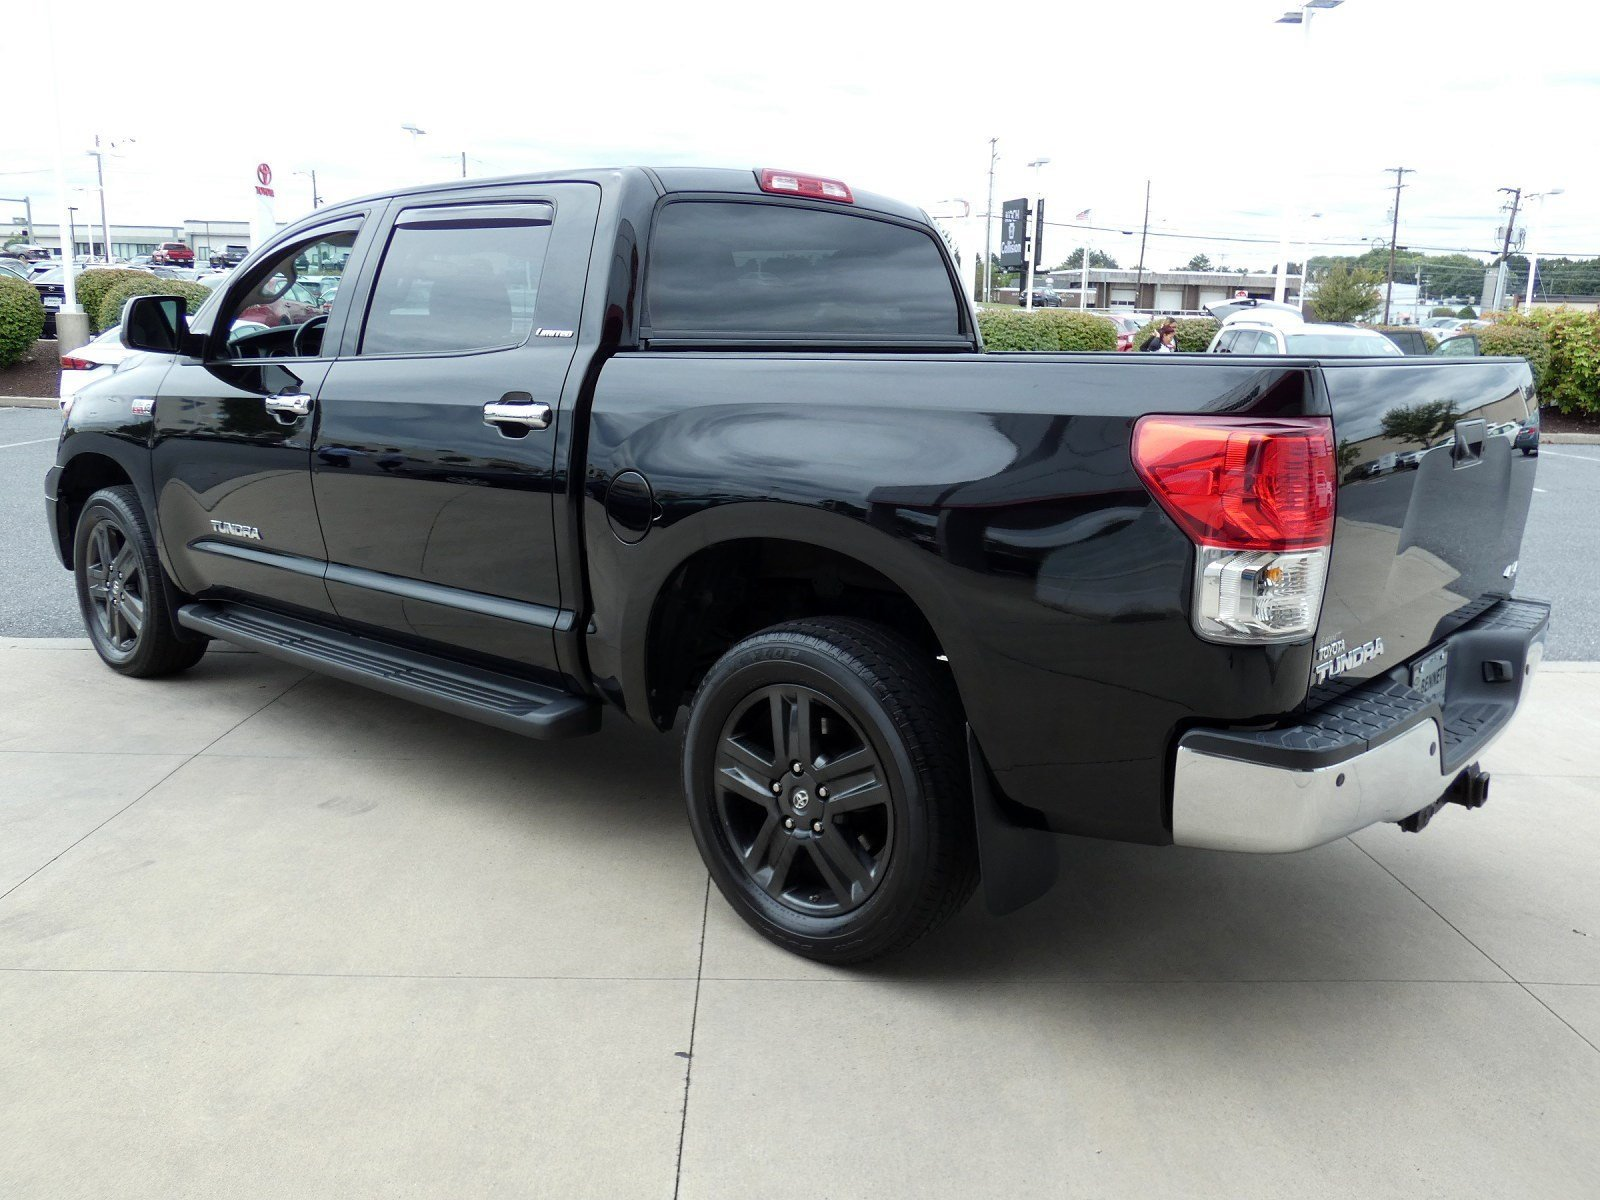 Certified Pre-Owned 2013 Toyota Tundra 4WD Truck LTD